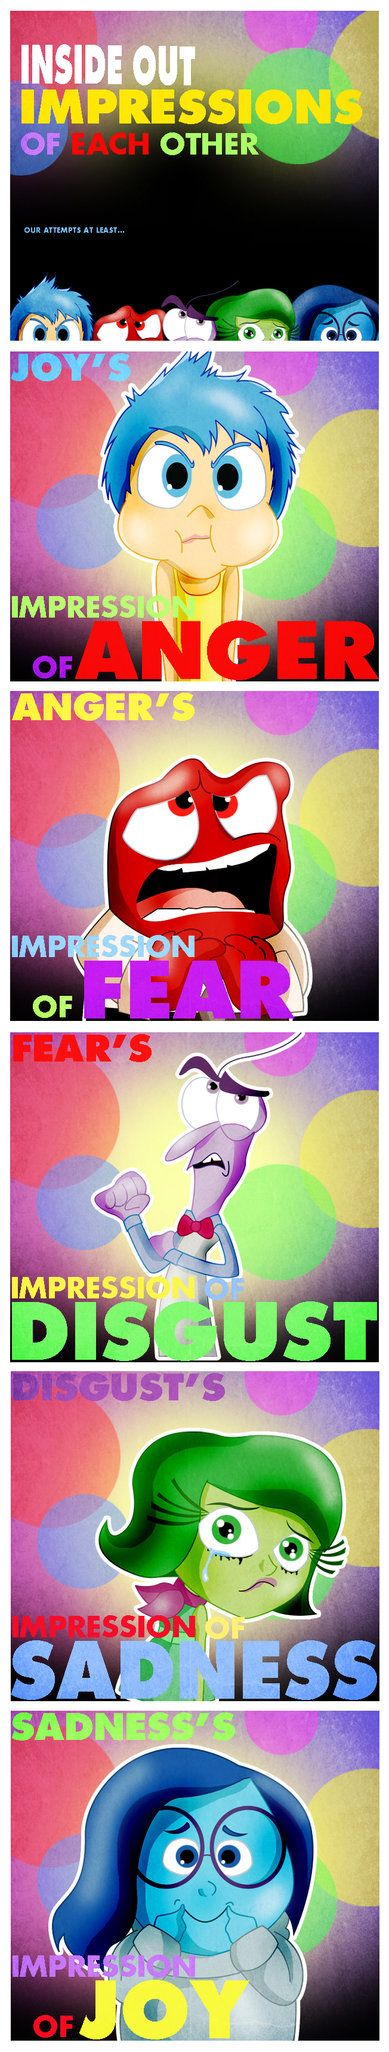 Inside Out Impressions of Each Other by xeternalflamebryx